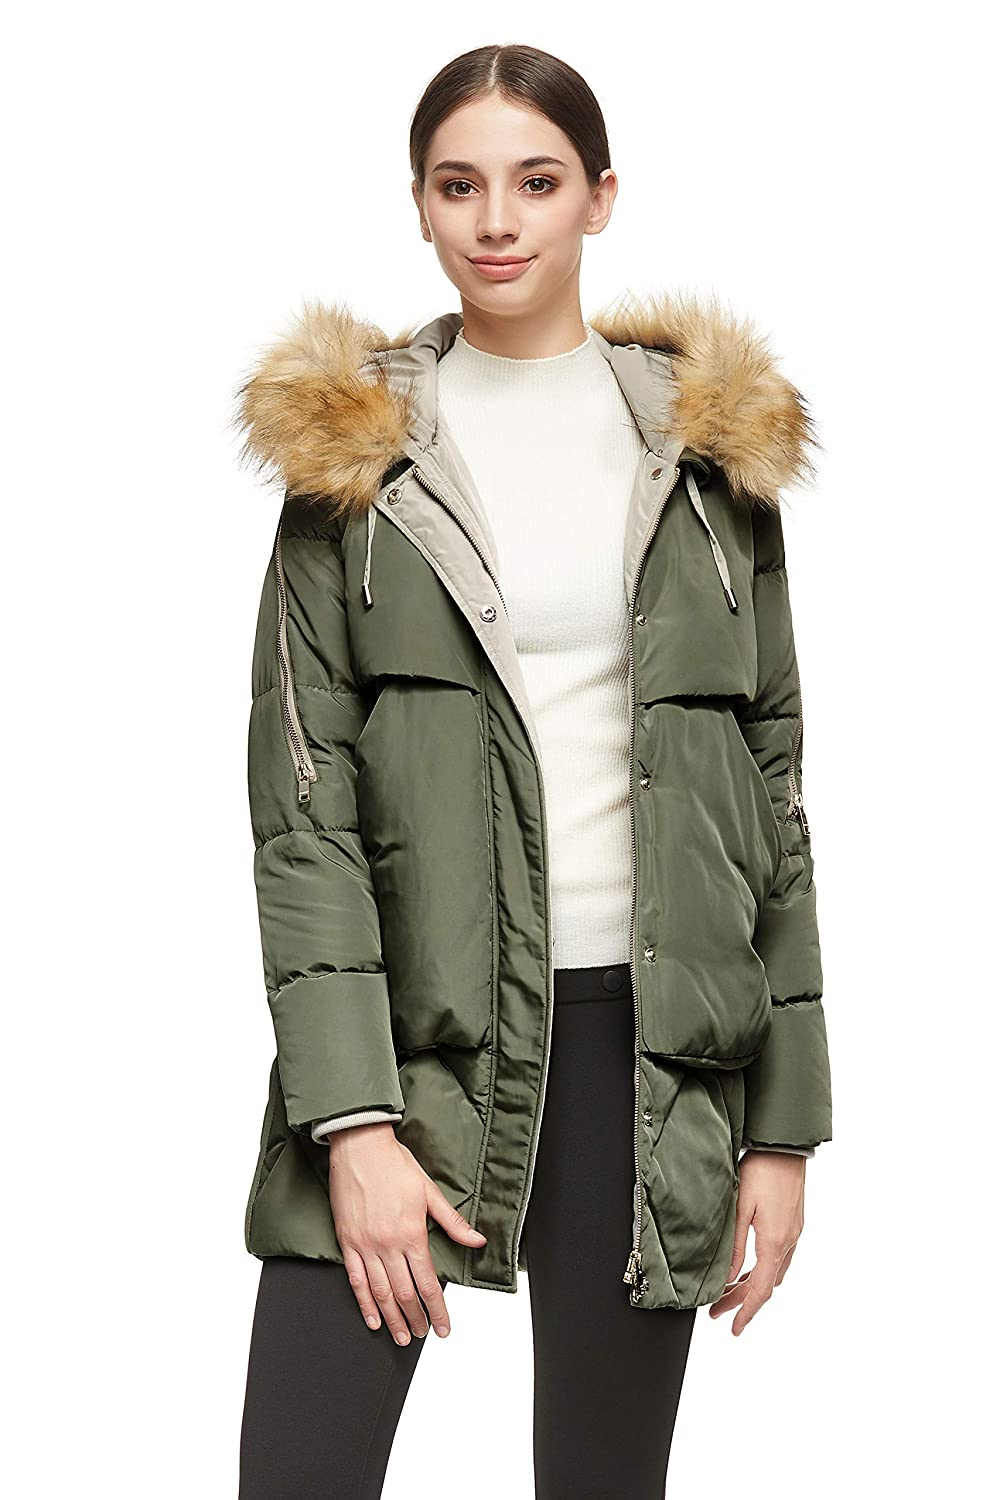 Orolay Women/'s Thickened Mid-Length Down Jacket with Removable Fur Hood Large Pockets